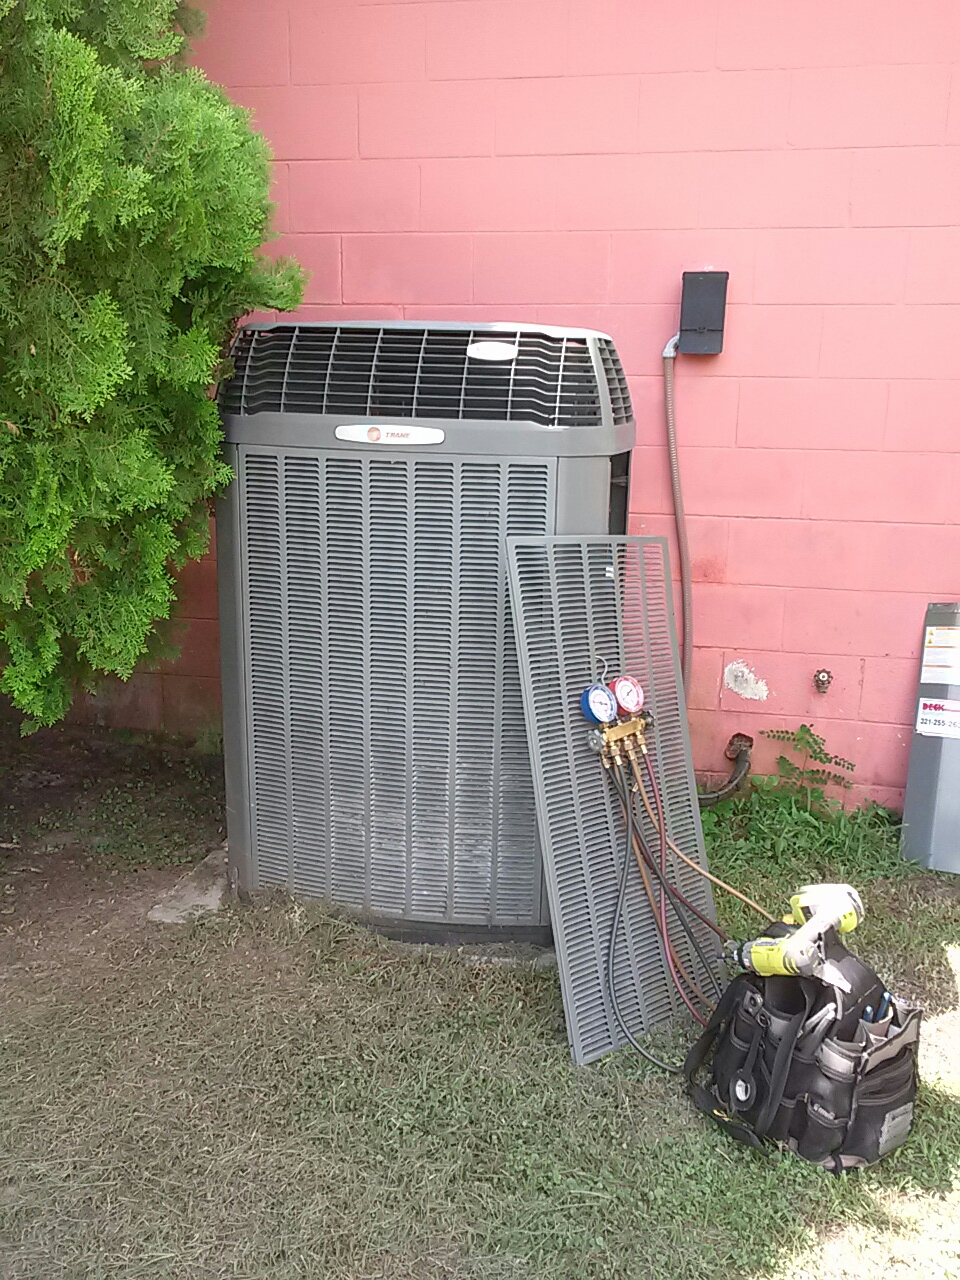 Malabar, FL - Residential air conditioning system tune up maintenance check